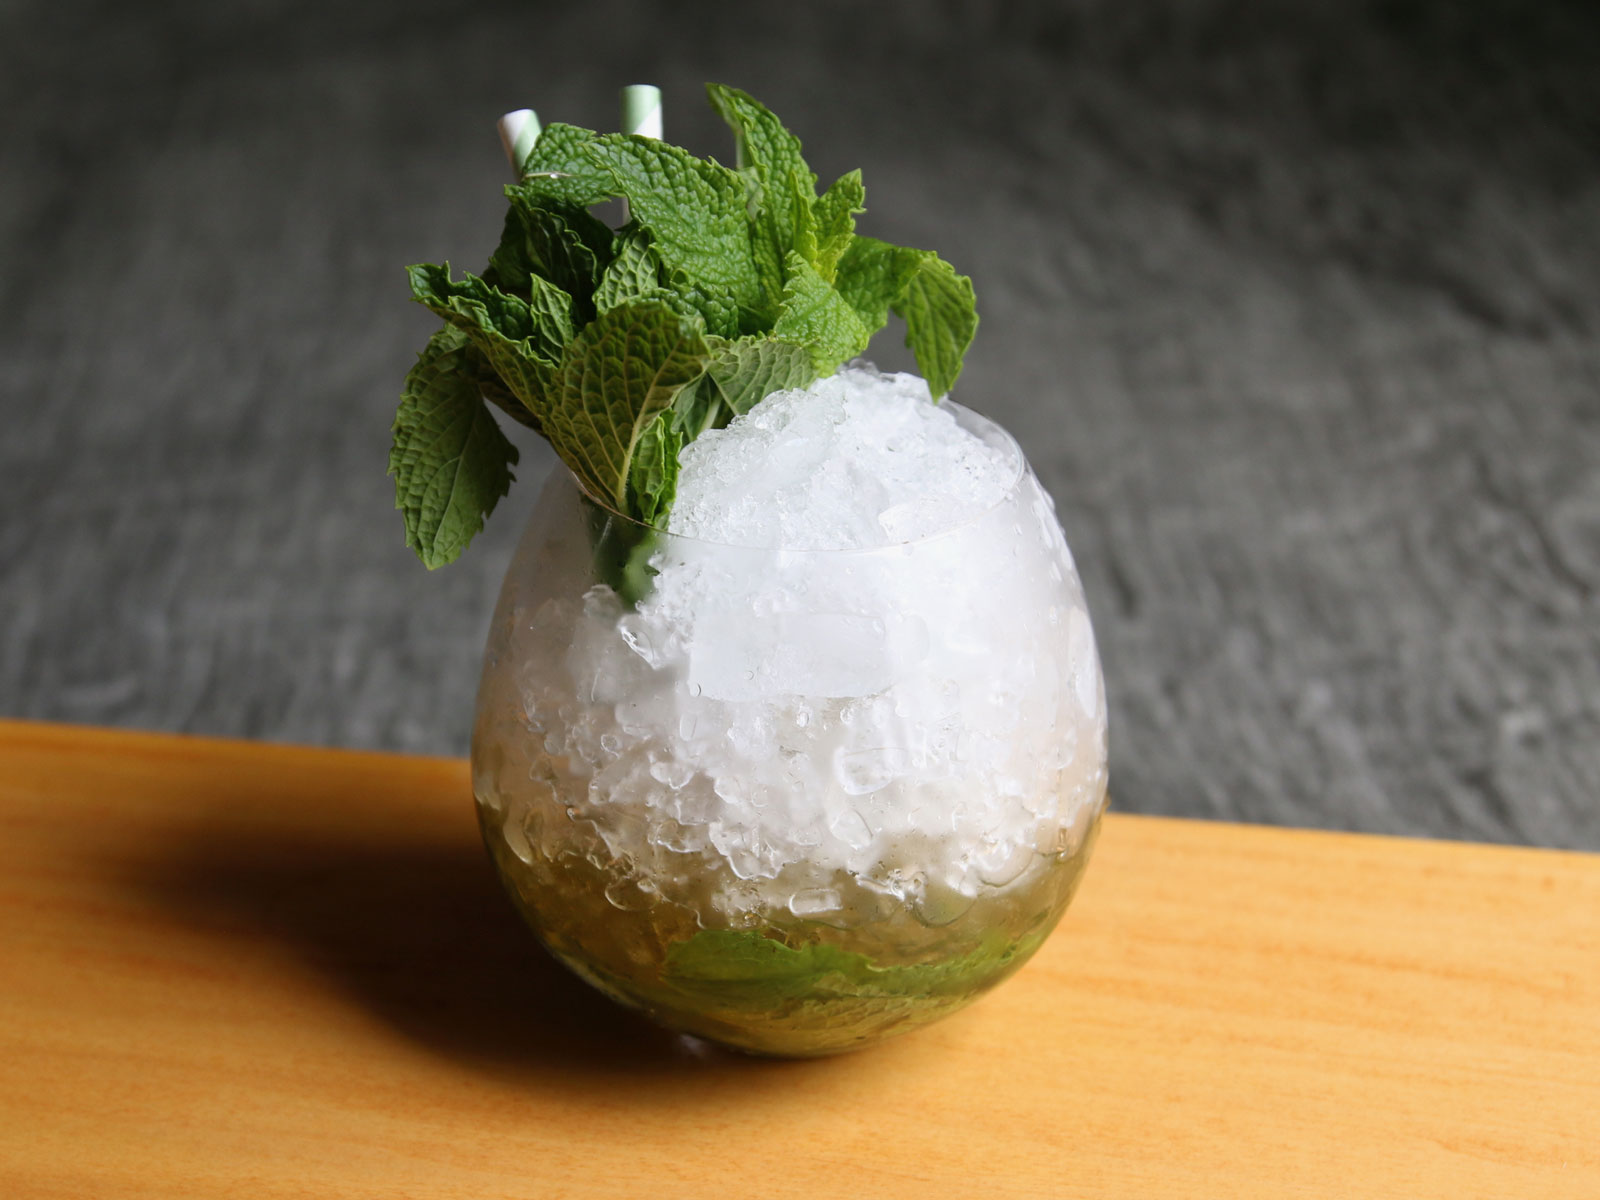 Lemon Julep